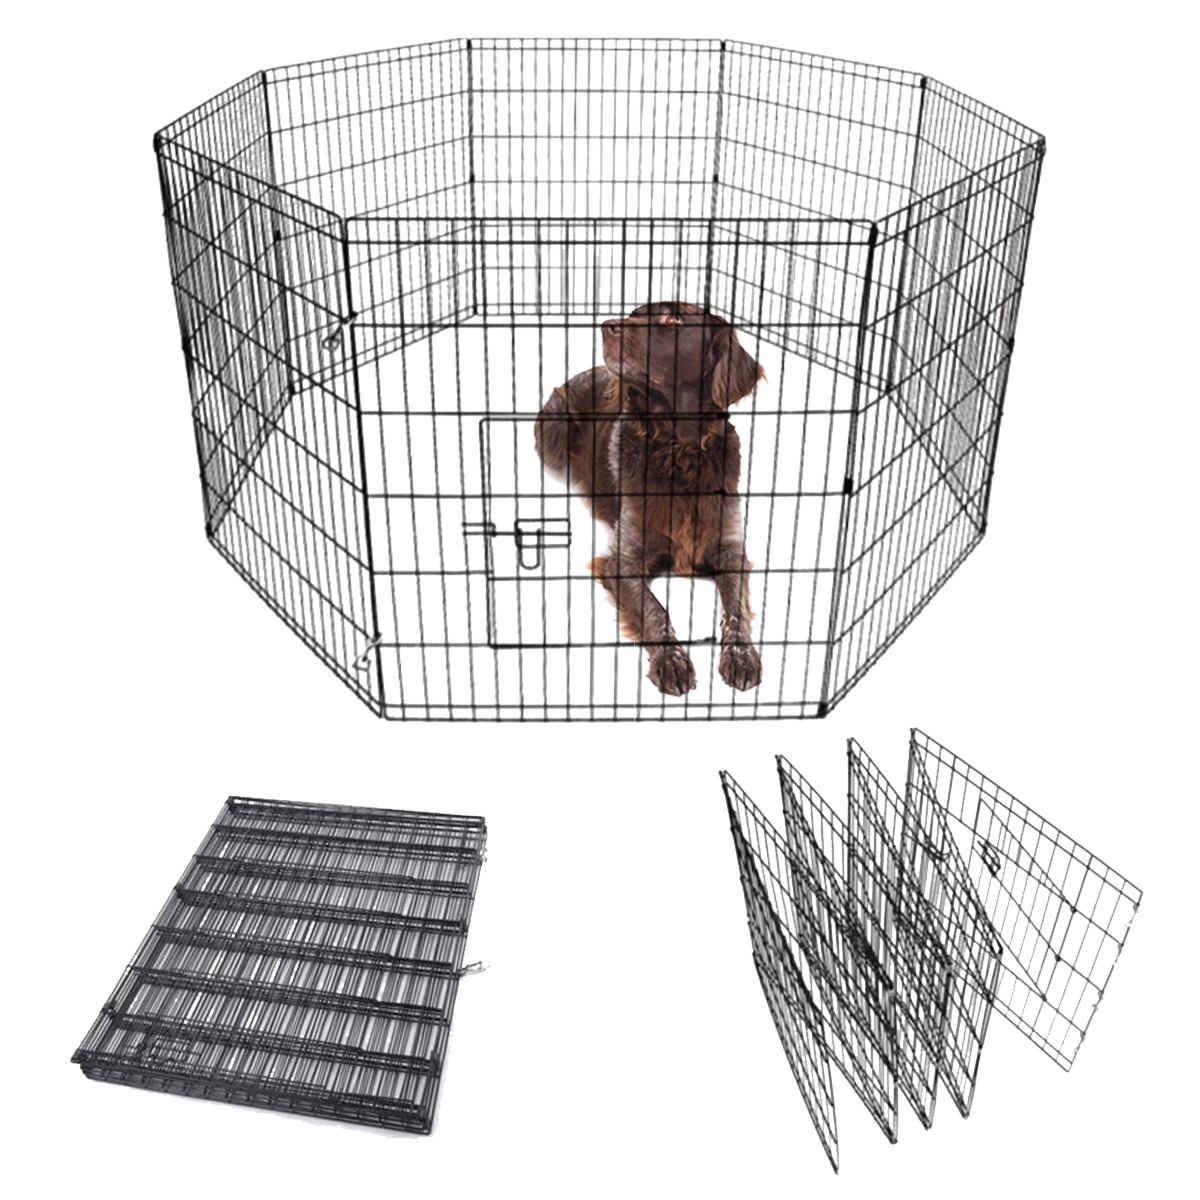 8 Panel Pet Playpen For Dog Puppy Rabbit Portable Cage Run